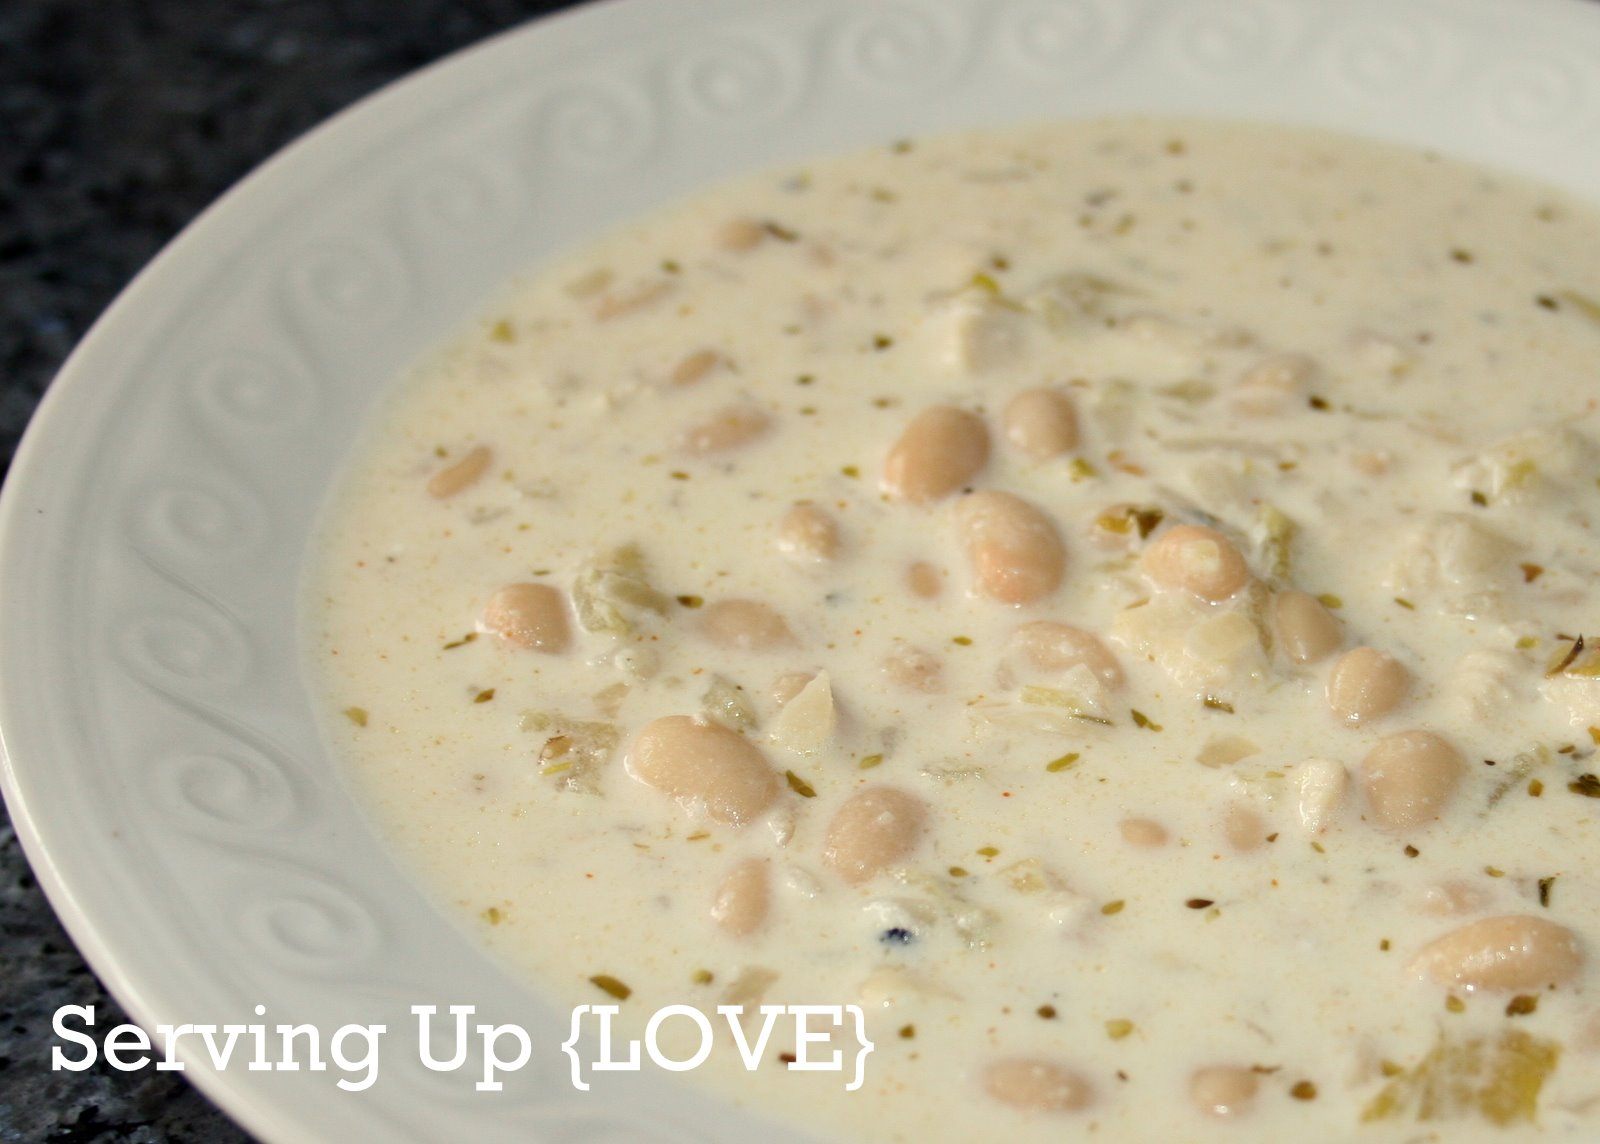 Katherine's Kitchen: Serving Up {Soup}: Creamy White Chili